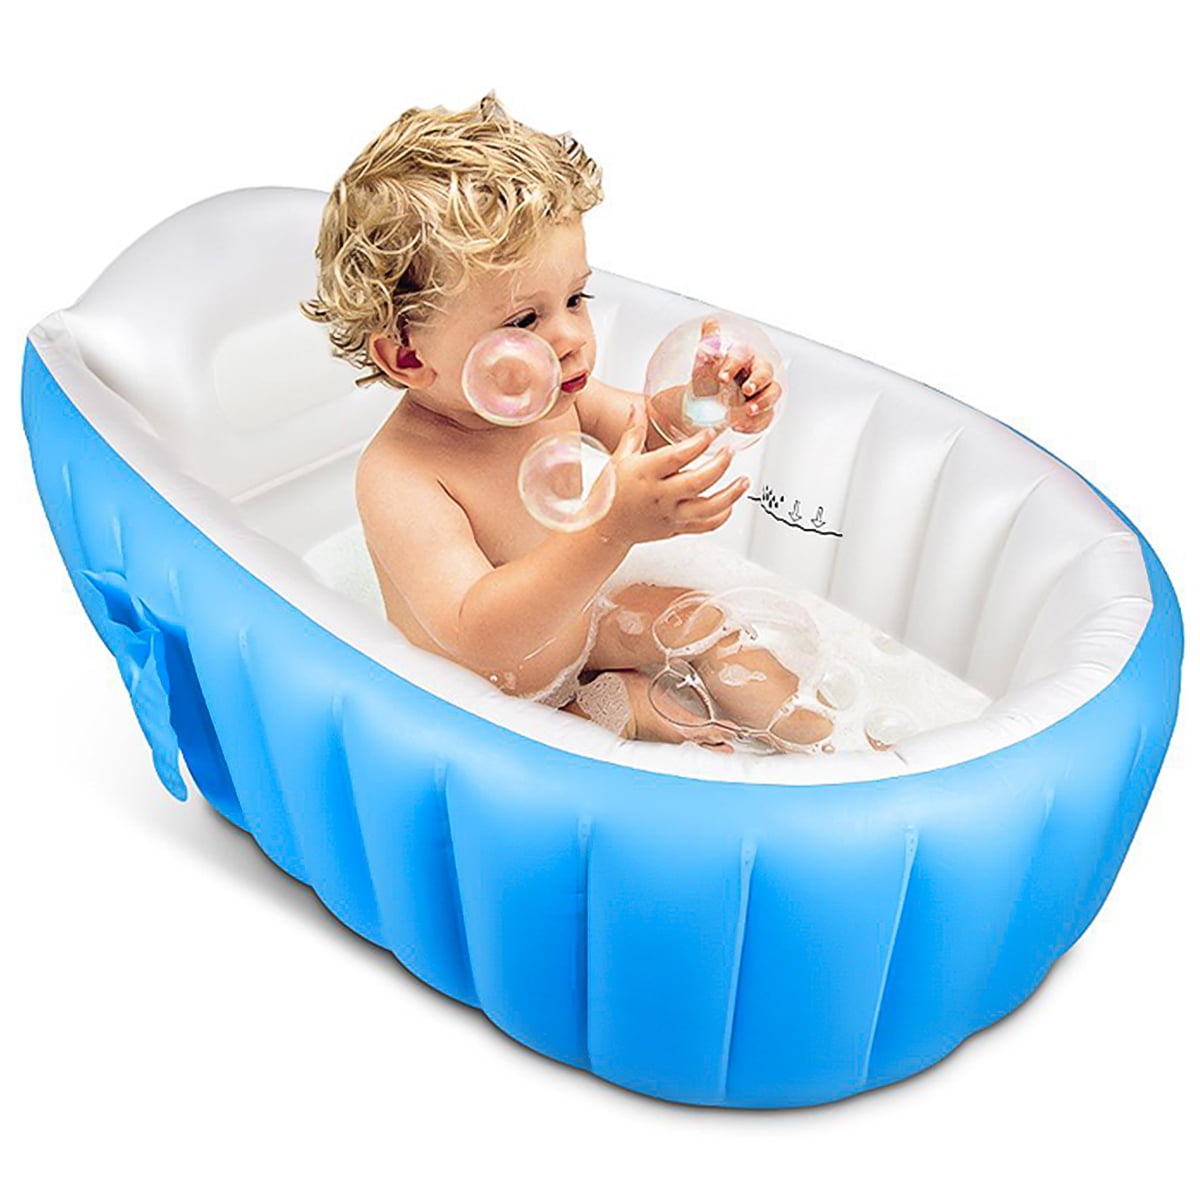 Baby Girl Bath Tub Salcon Inflatable Baby Bathtub Infant Bathtub Foldable Baby Bathtub Travel Bath Tub for Baby with Bath Toy Organizer Pink